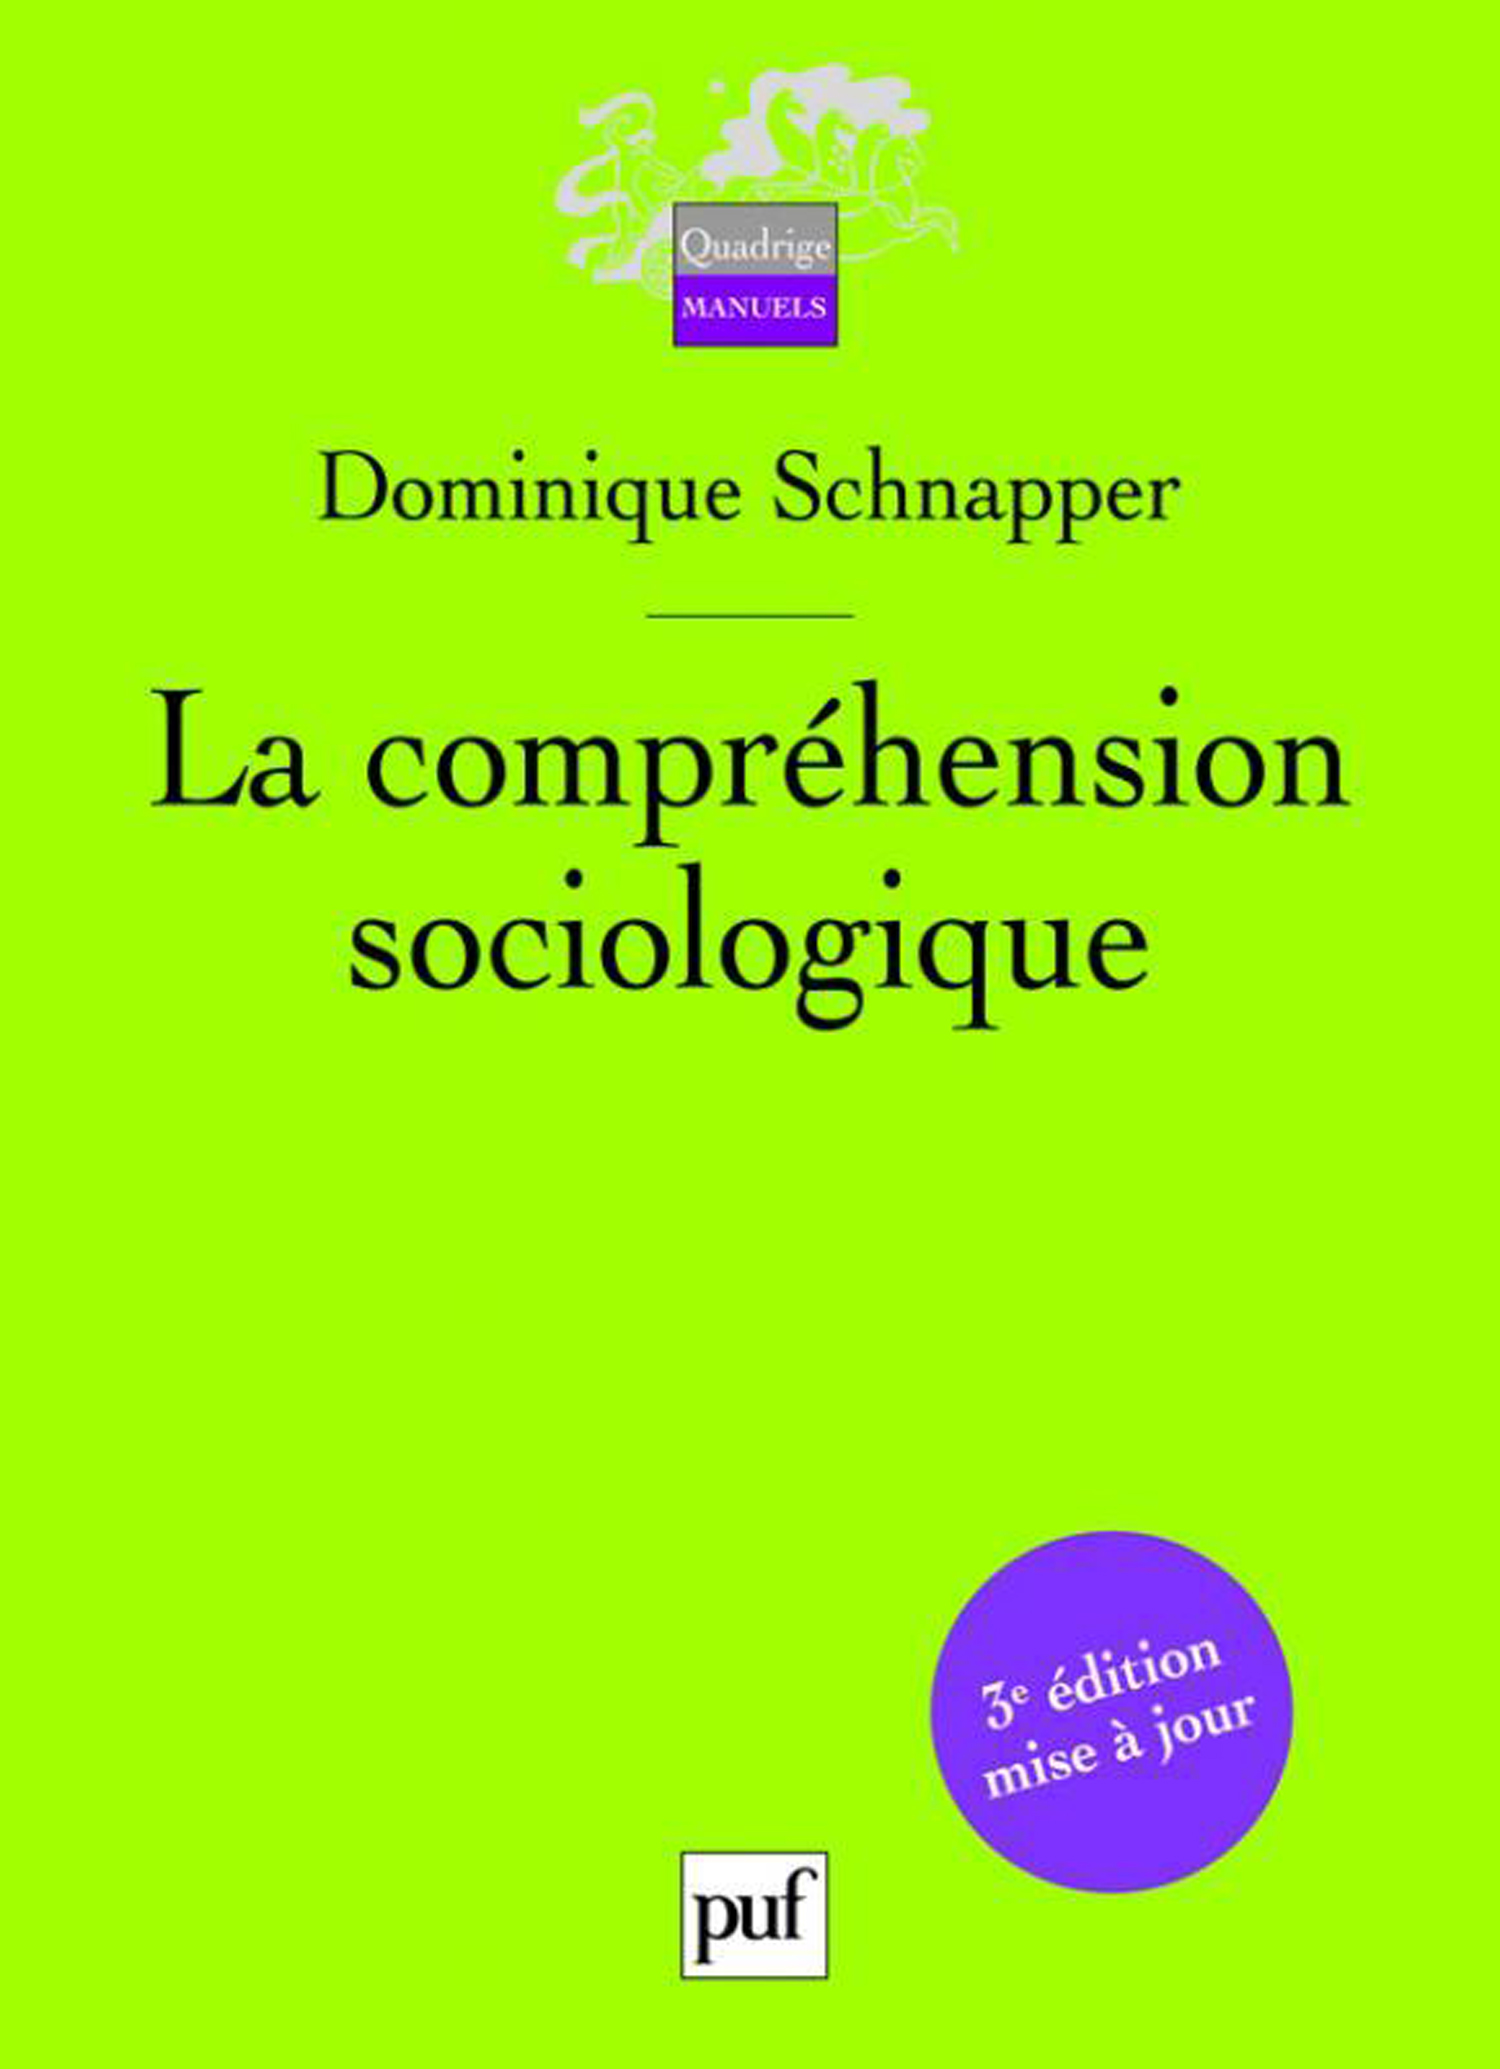 La compréhension sociologique De Dominique Schnapper - Presses Universitaires de France